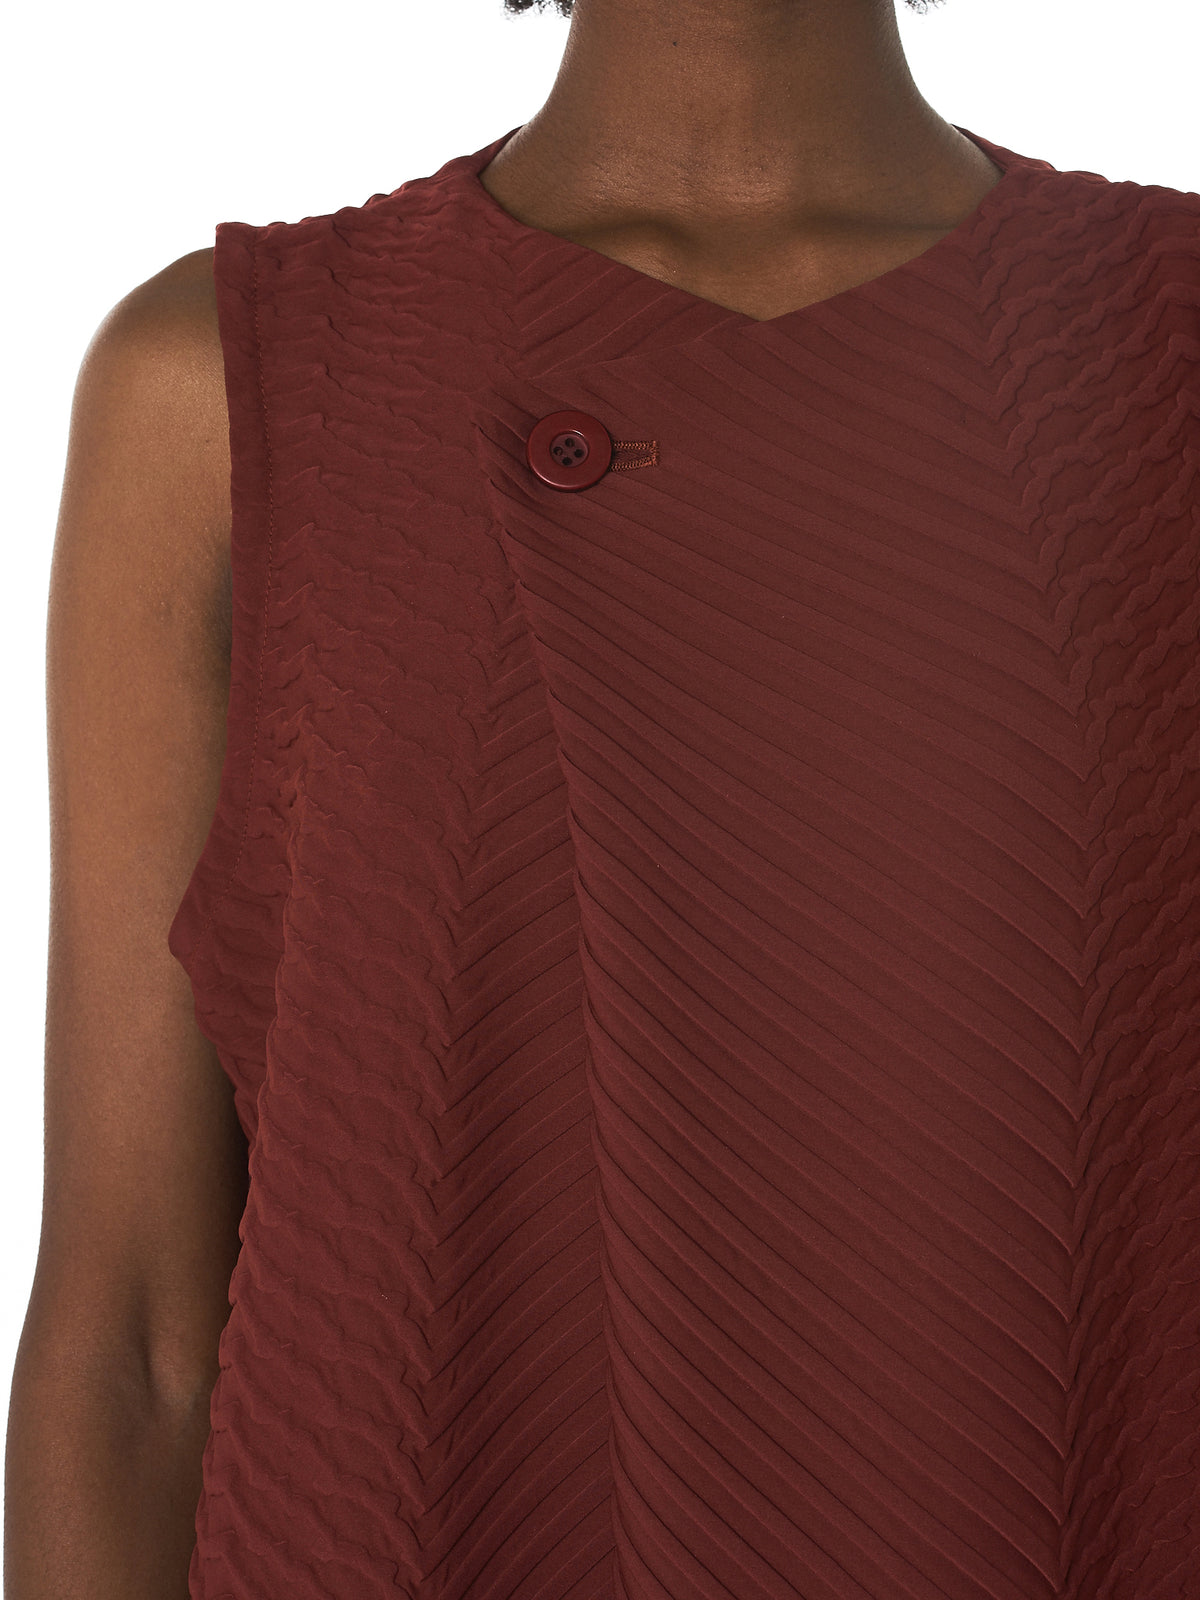 Issey Miyake Pleated Dress - Hlorenzo Detail 2